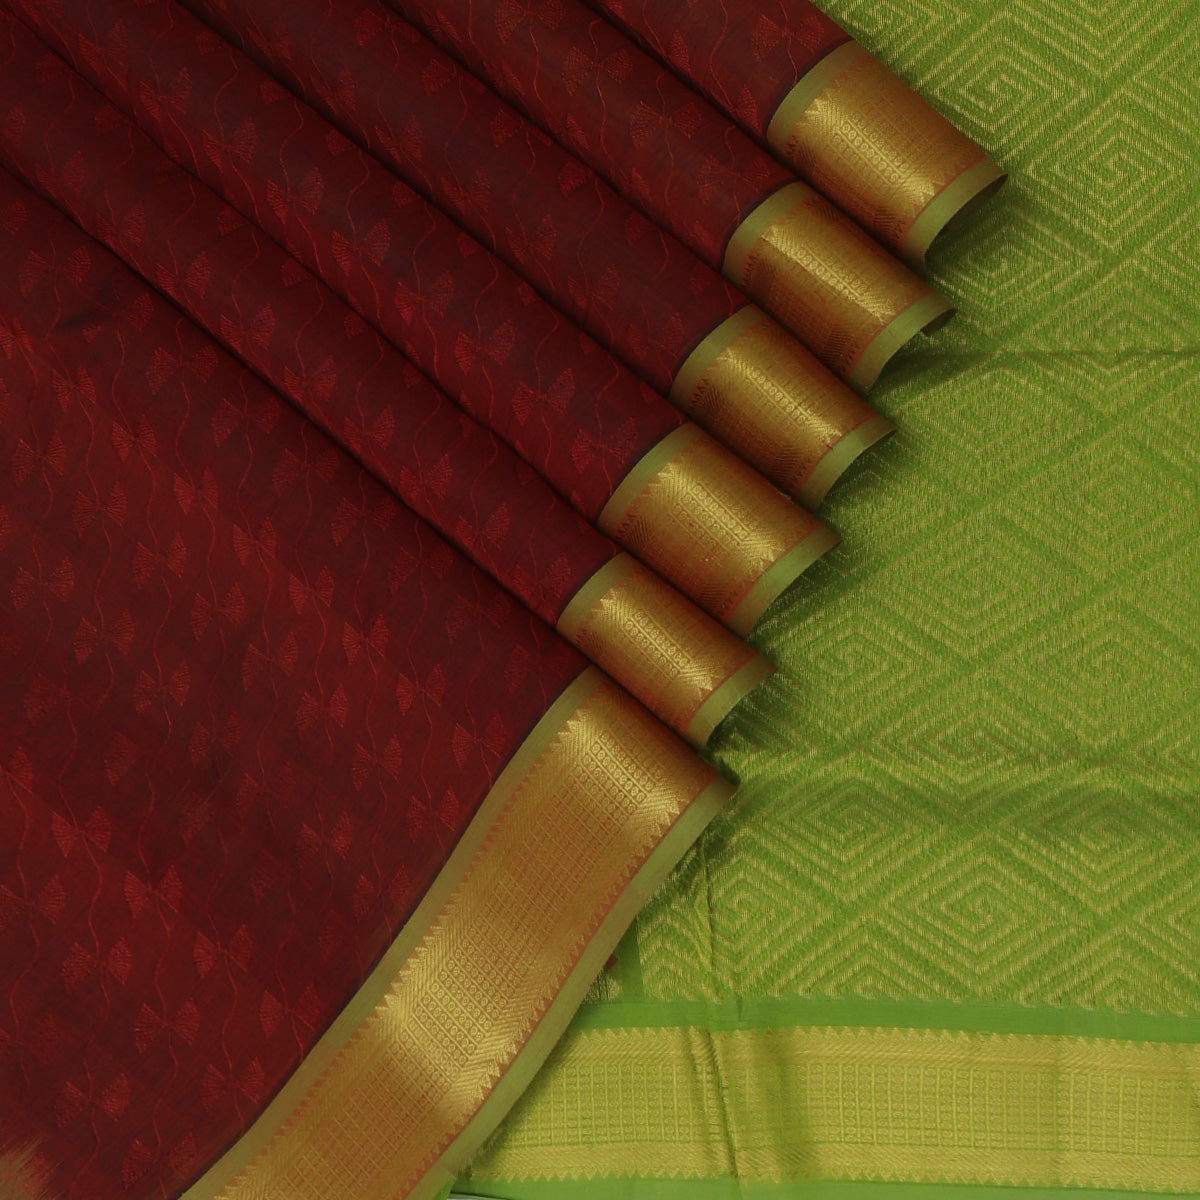 Silk Cotton Saree-Dark Maroon and Light Green with Temple Zari border jacquard